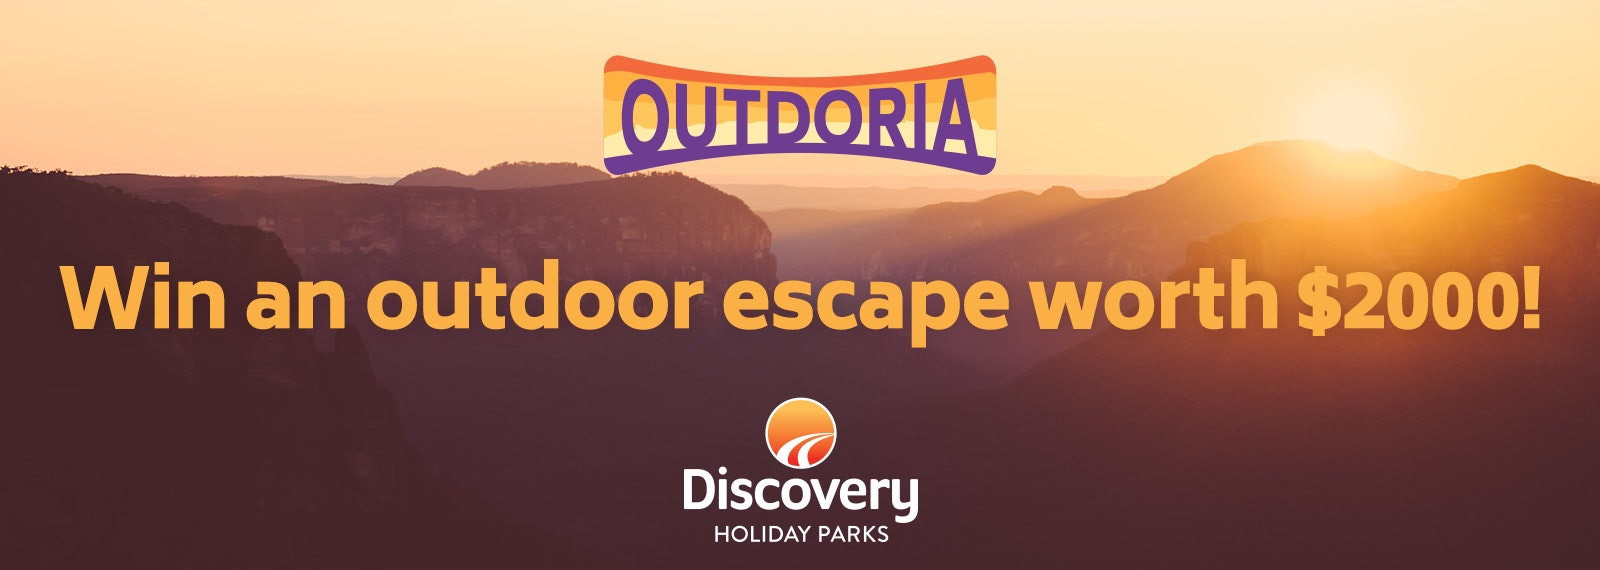 Win an outdoor escape worth $2000